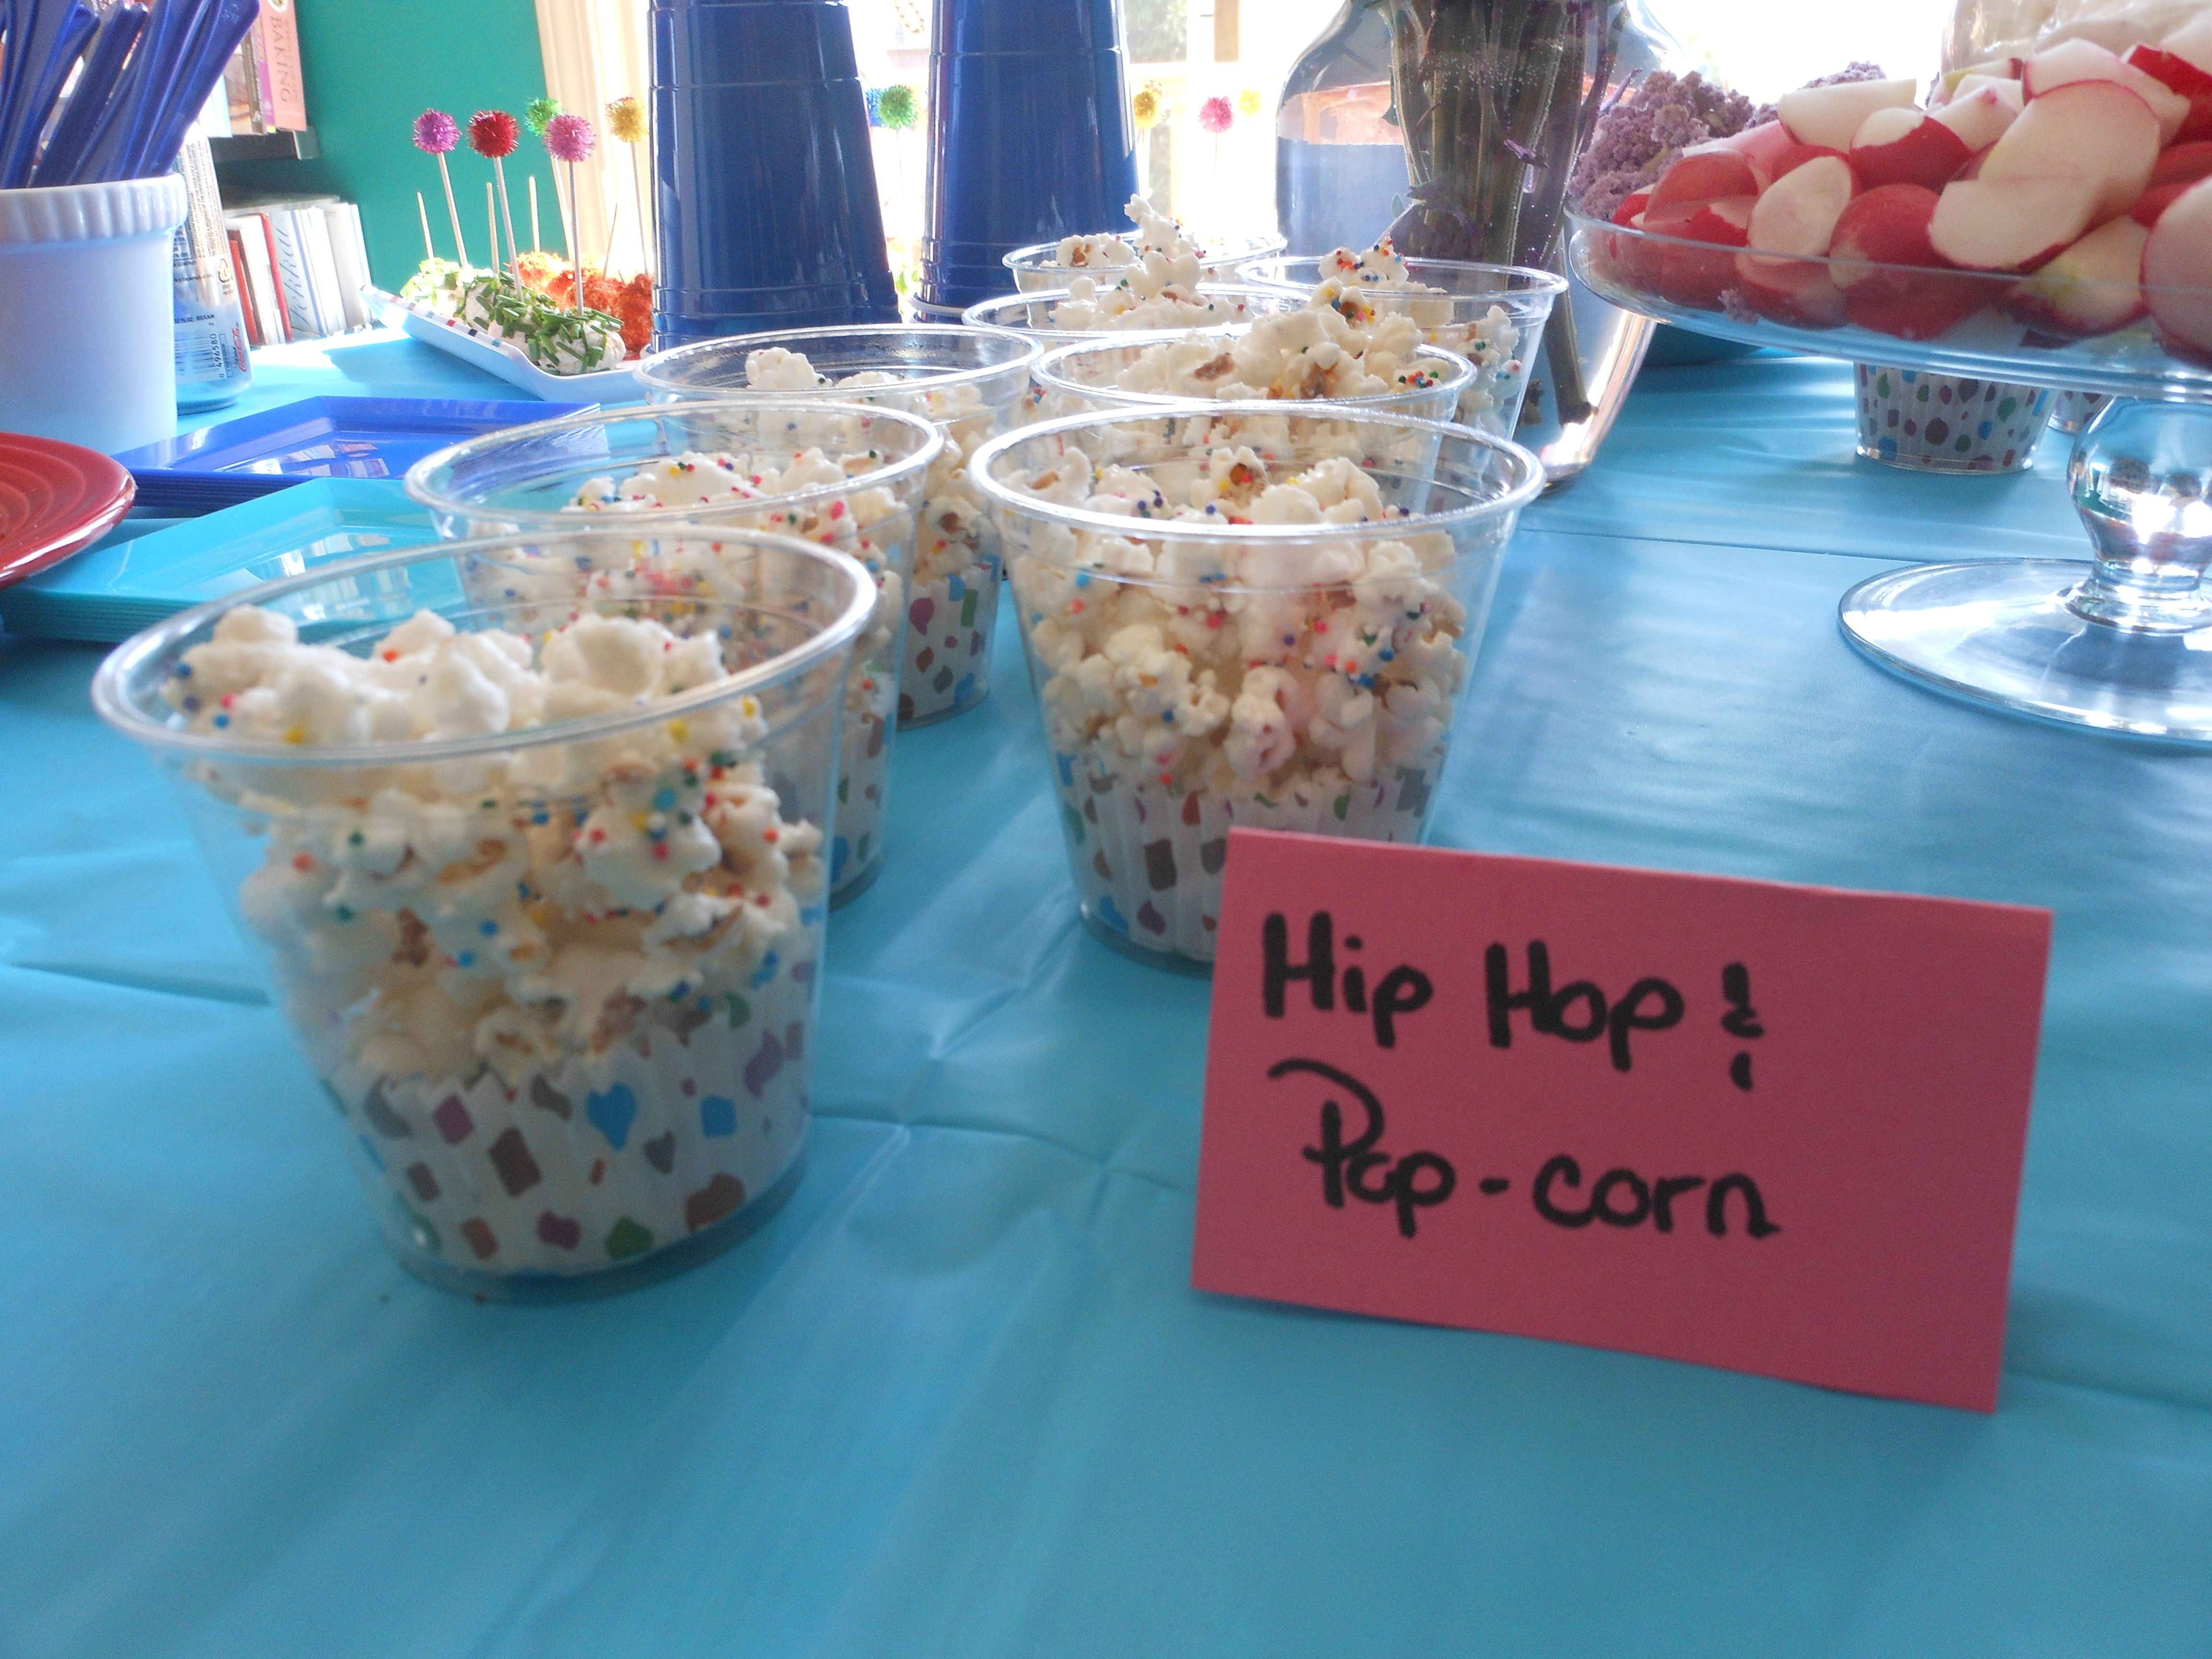 Hip Hop and Popcorn. Air popped pop corn with melted